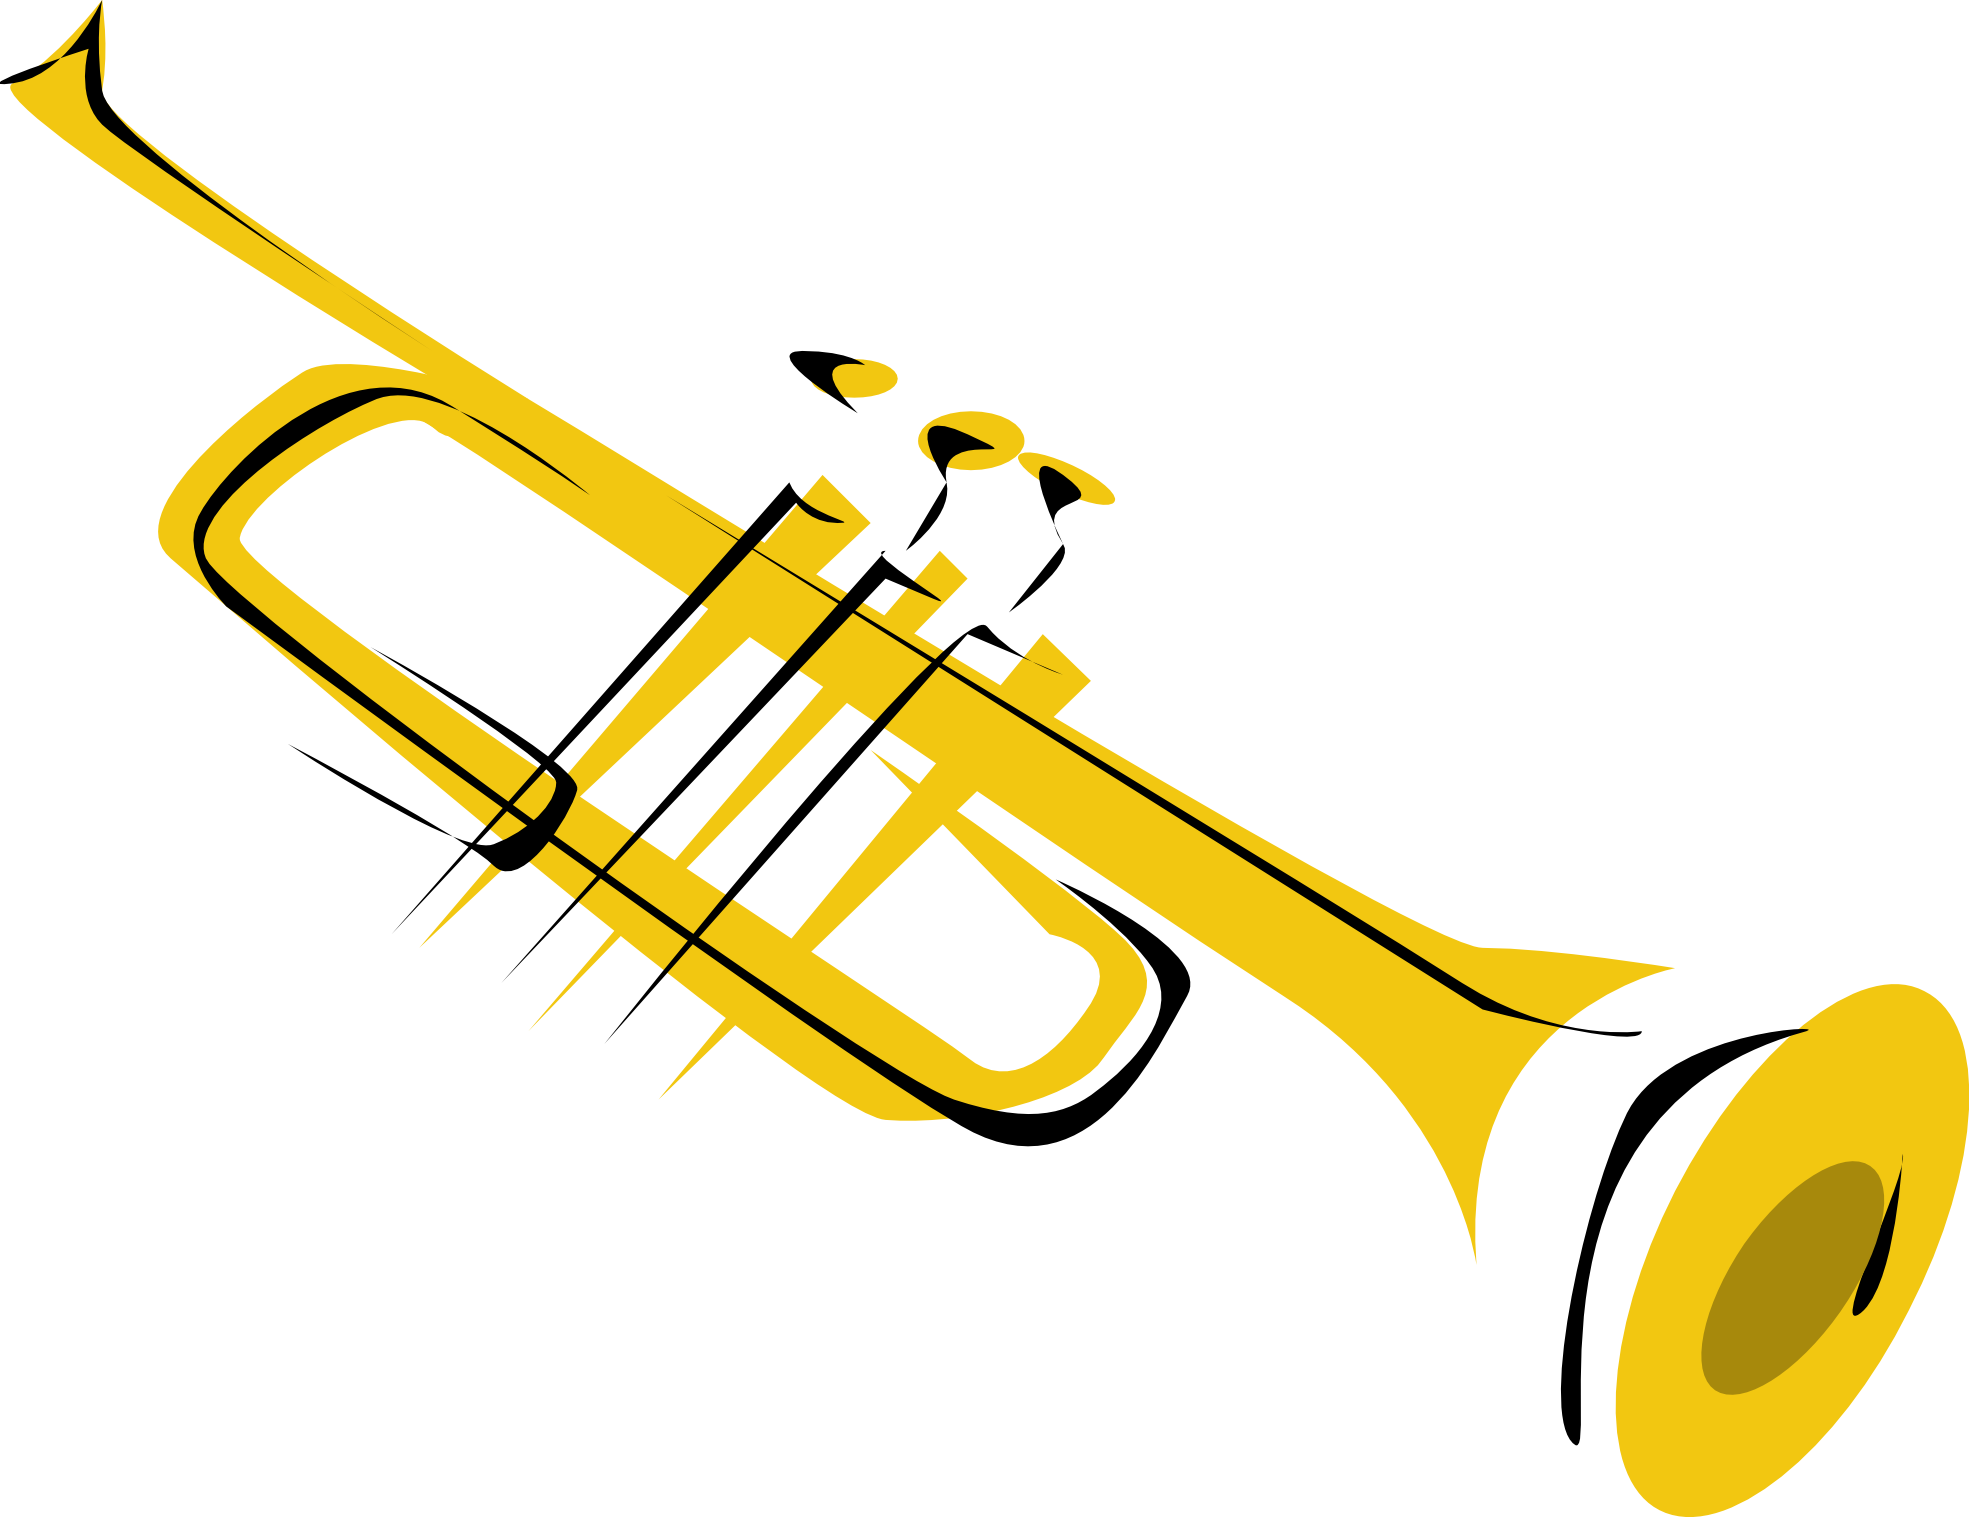 Medieval clipart trumpet. Clip art library